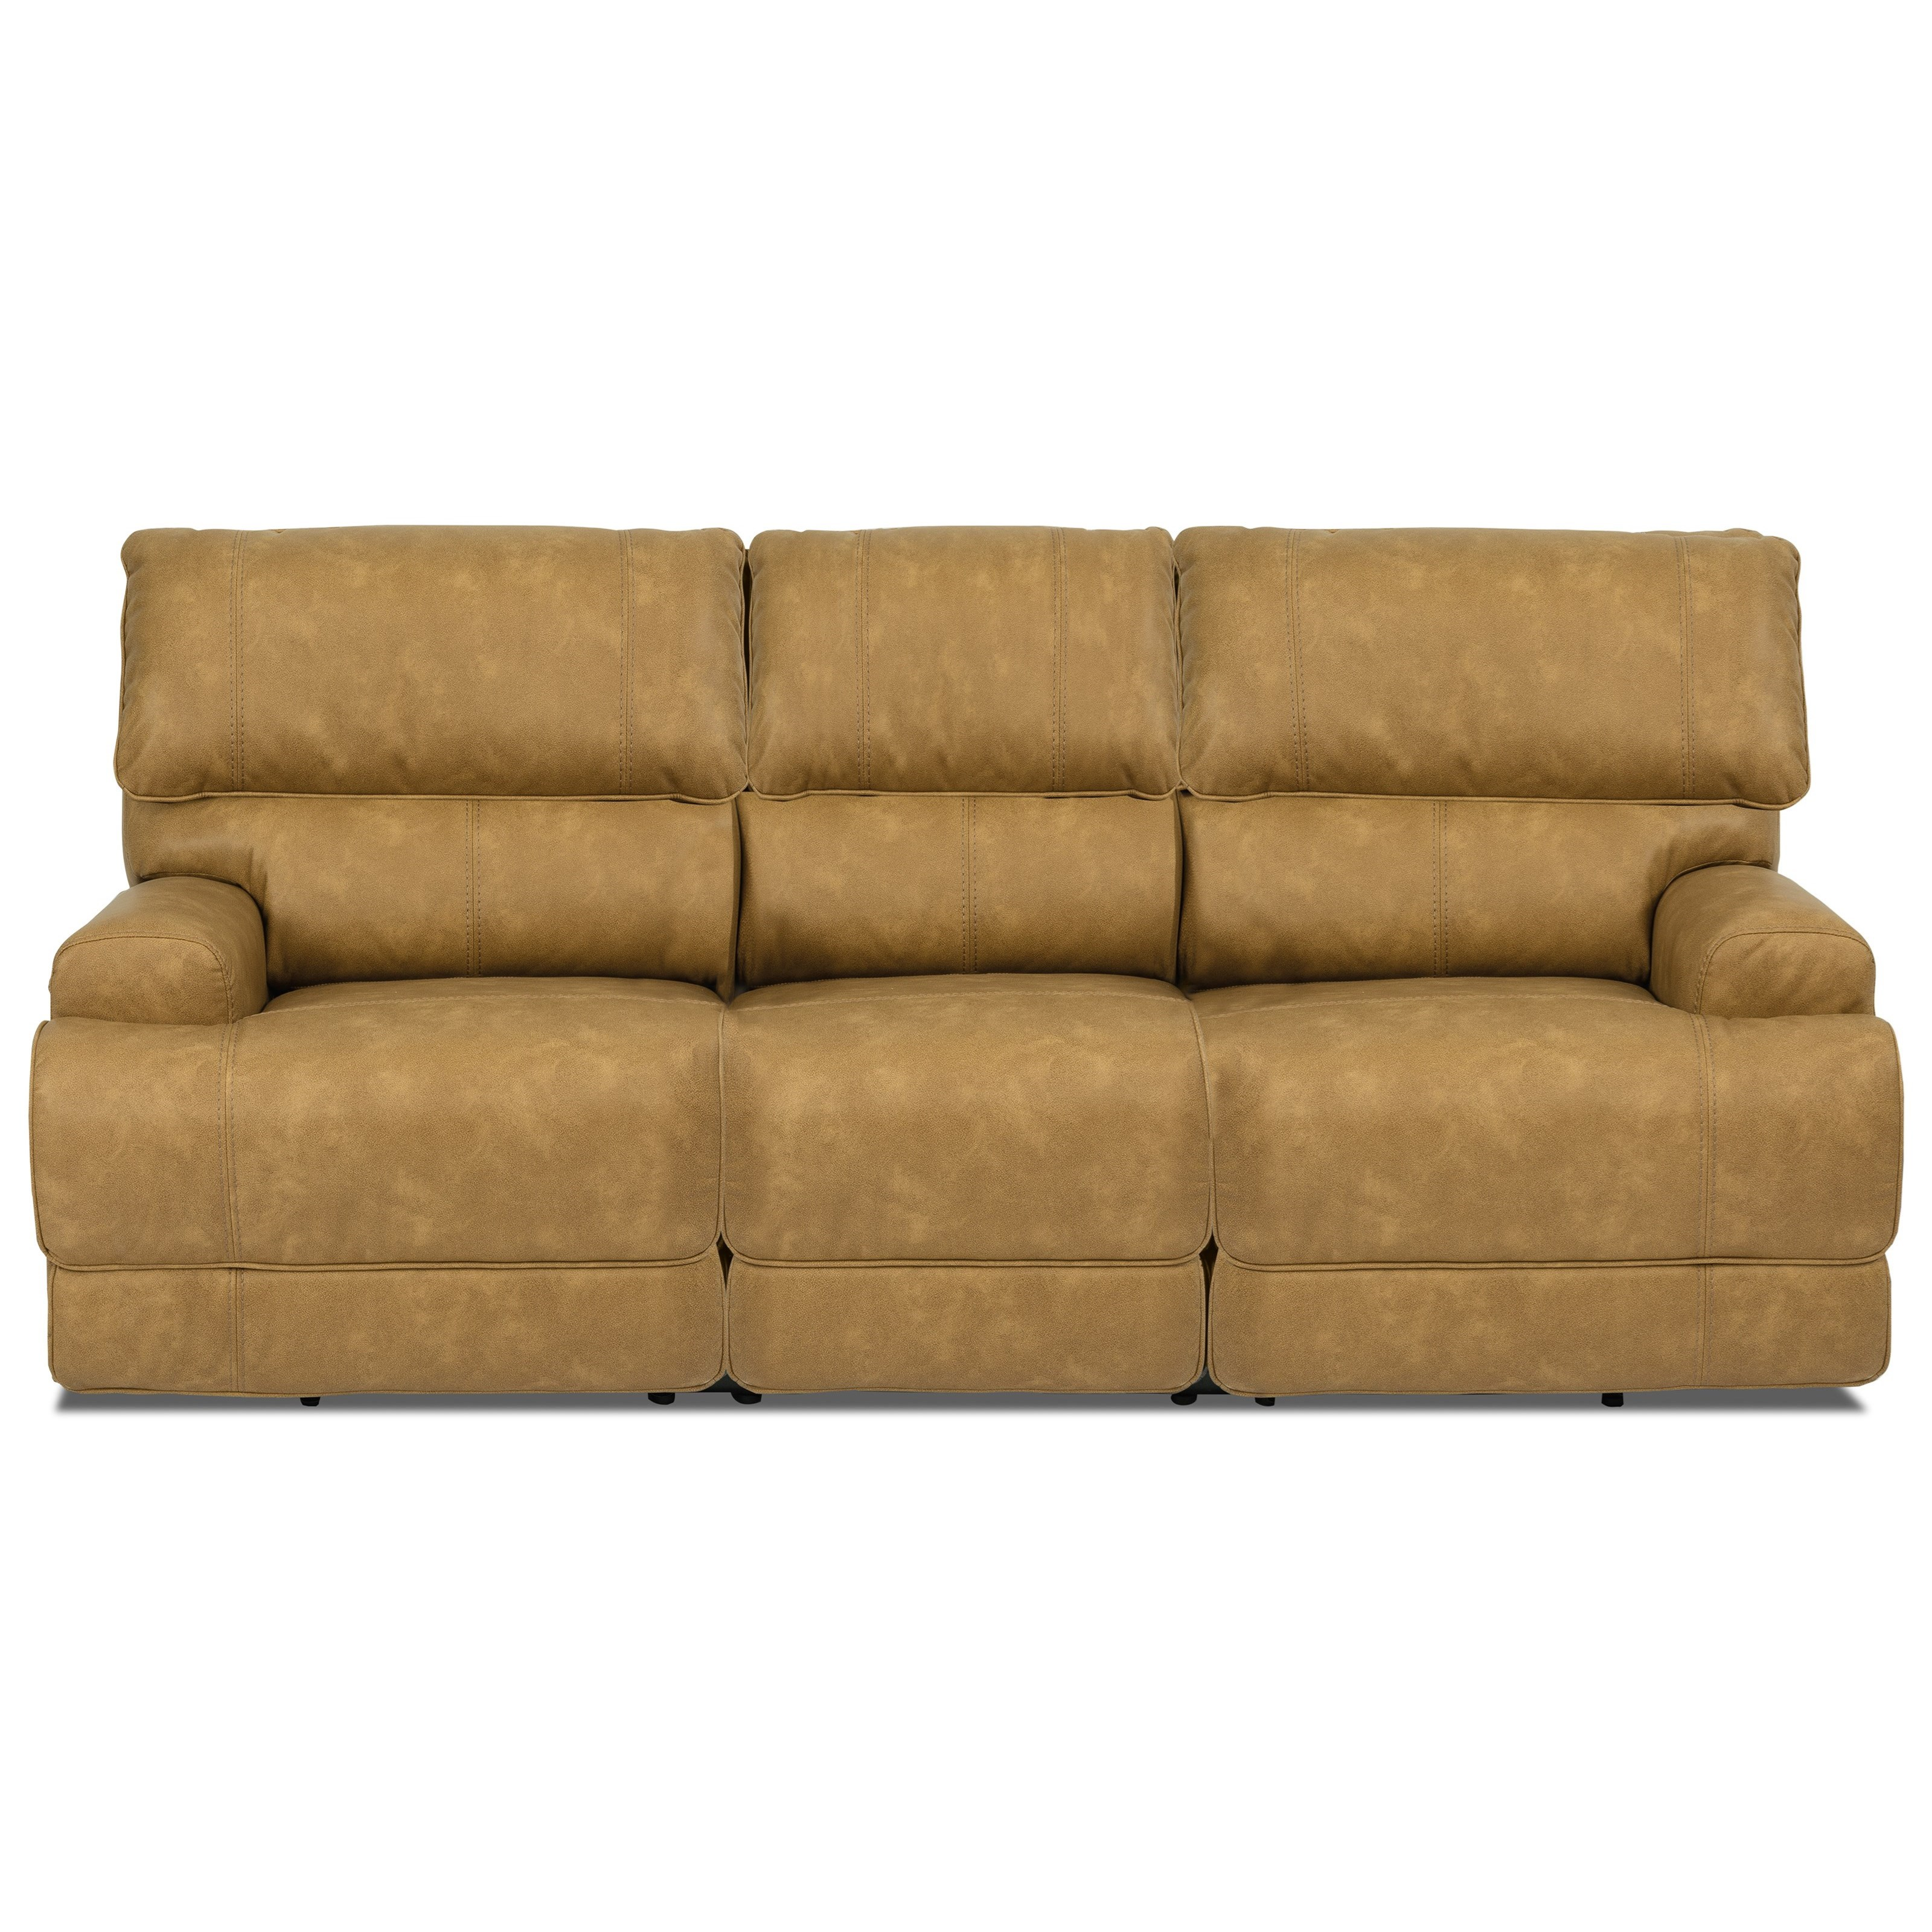 Latitudes - Floyd Power Reclining Sofa by Flexsteel at Walker's Furniture